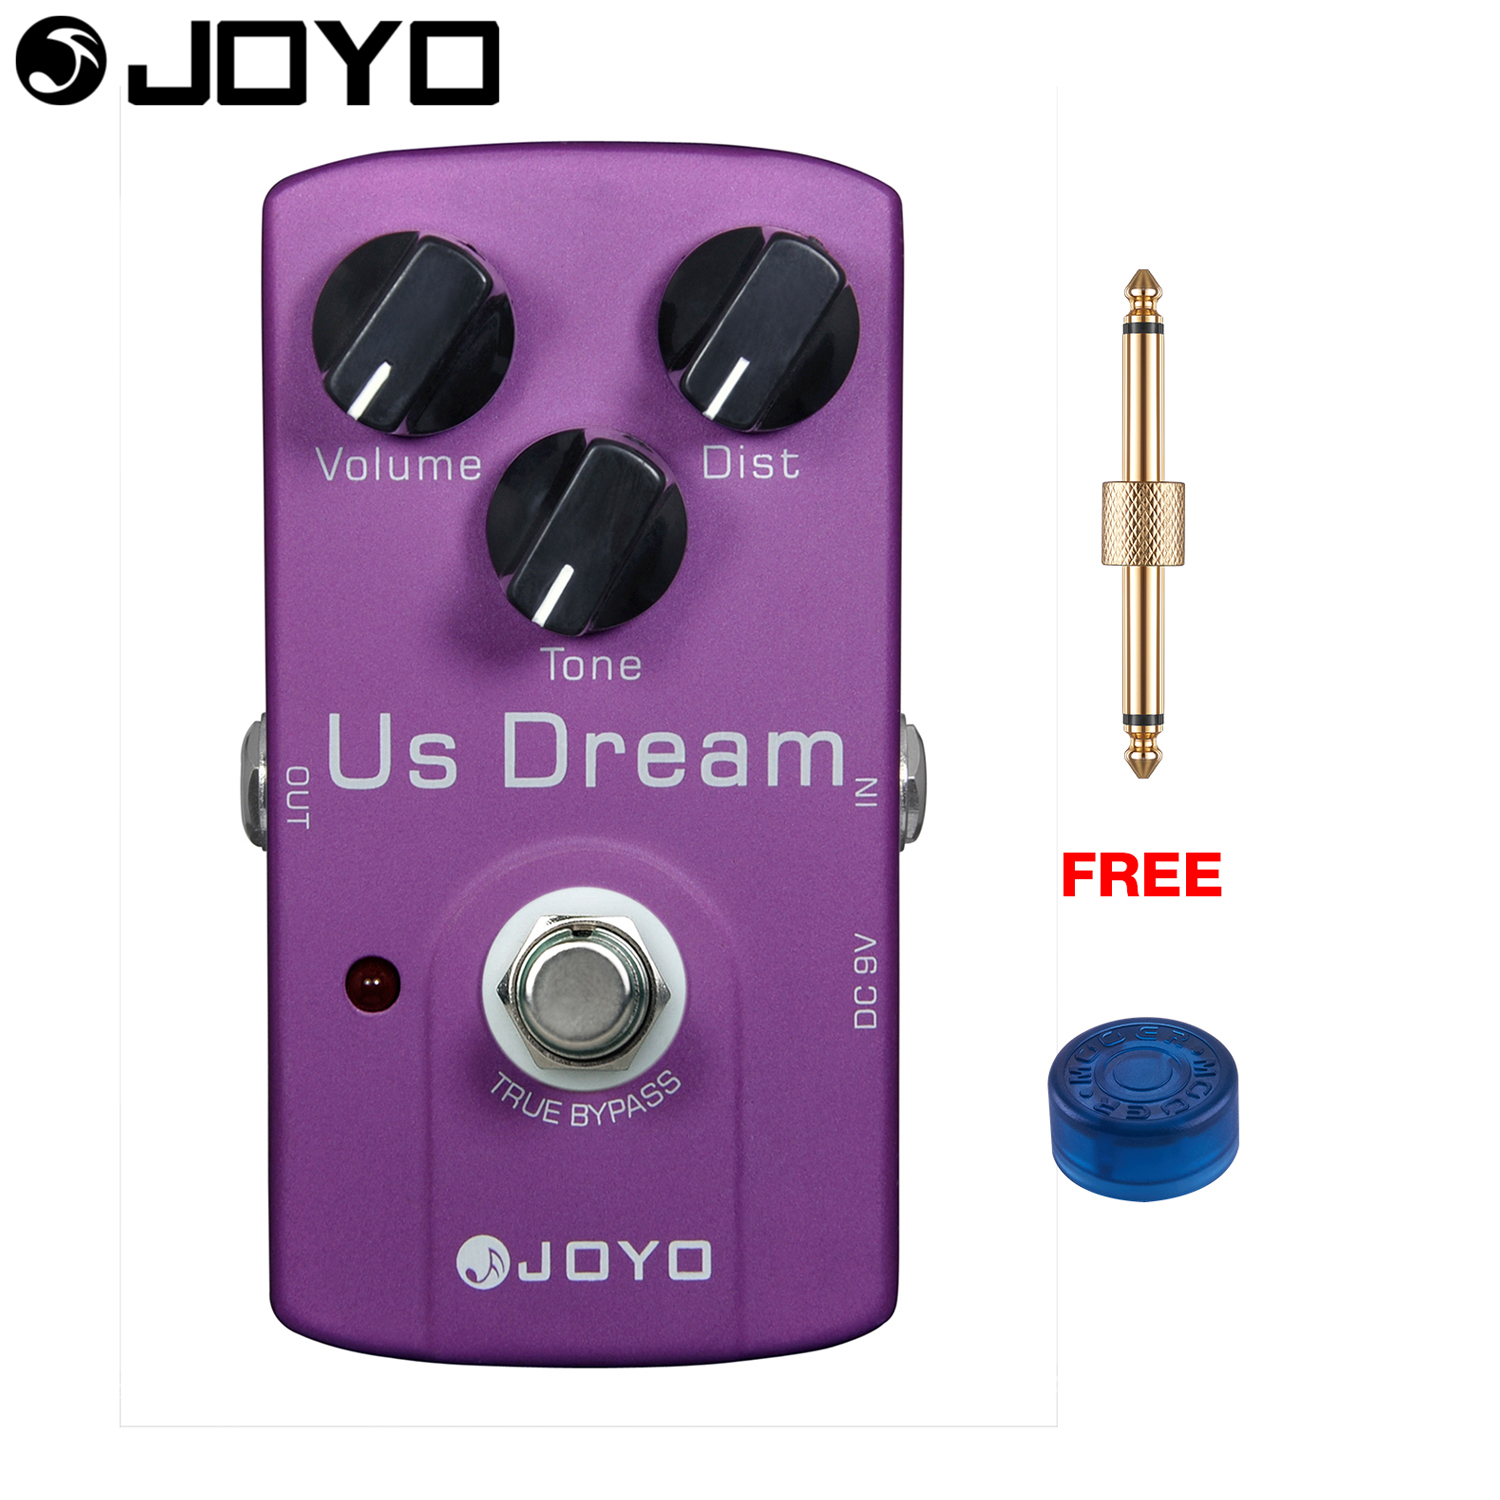 JOYO US Dream Distortion Electric Guitar Effect Pedal True Bypass JF-34 with Free Connector and Footswitch Topper aroma adr 3 dumbler amp simulator guitar effect pedal mini single pedals with true bypass aluminium alloy guitar accessories